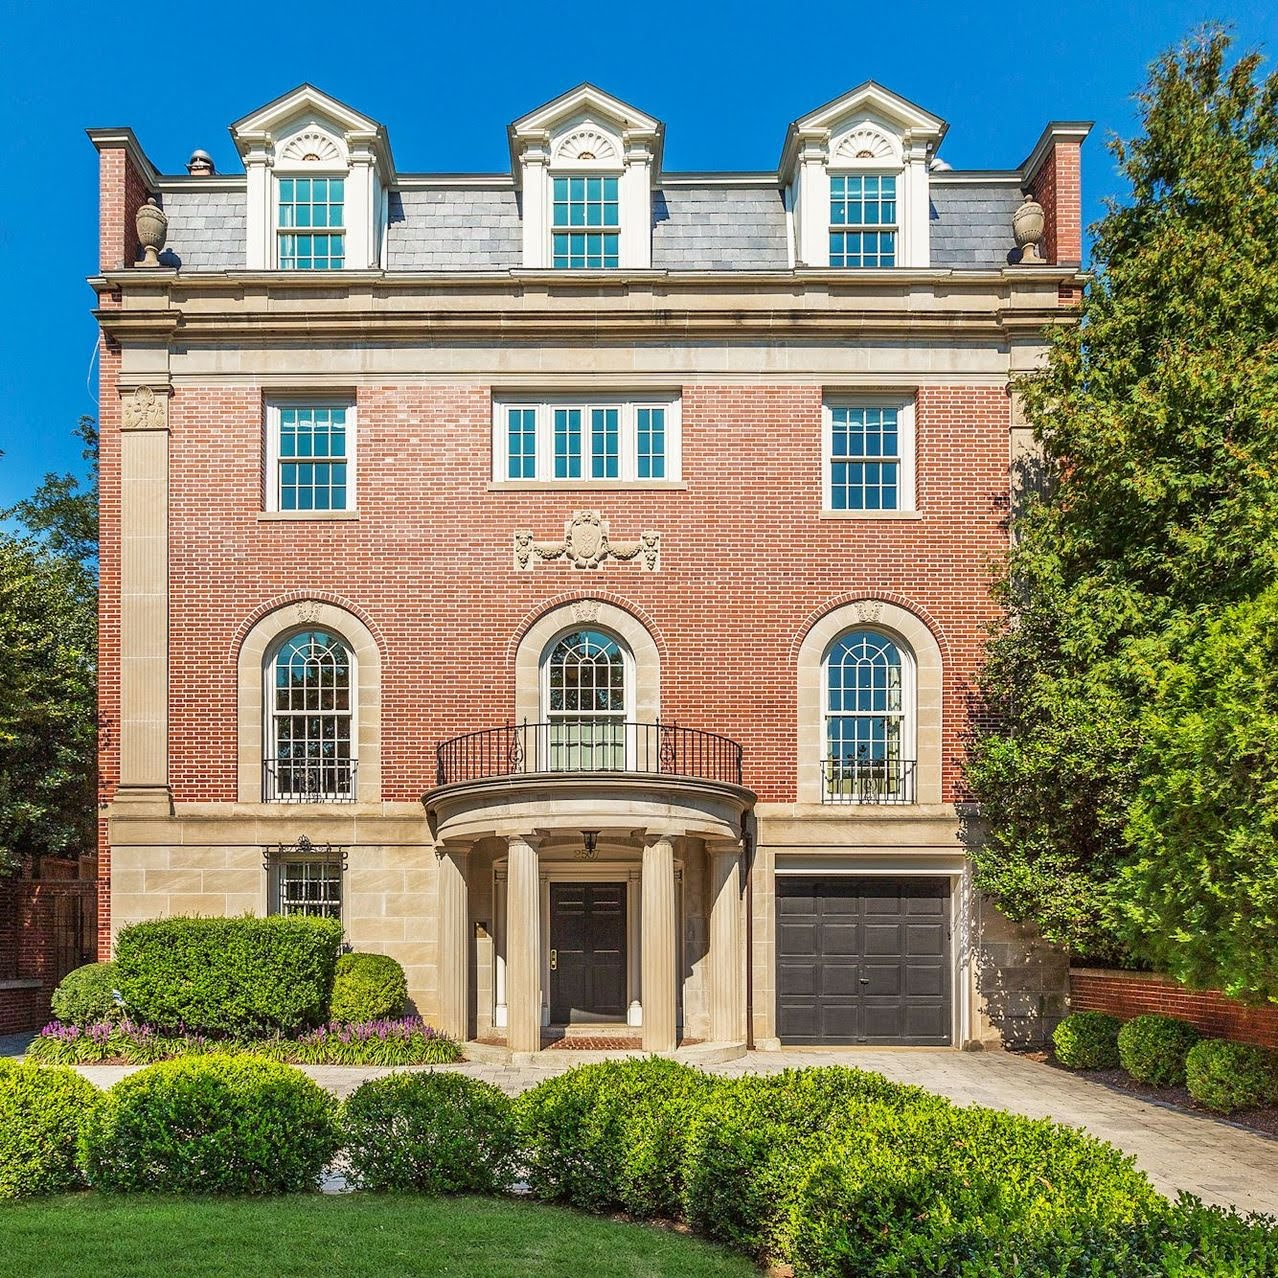 Michael Stock's Beaux-Arts Revival-style home on Washington, D.C.'s Embassy Row is asking $5.5 million.